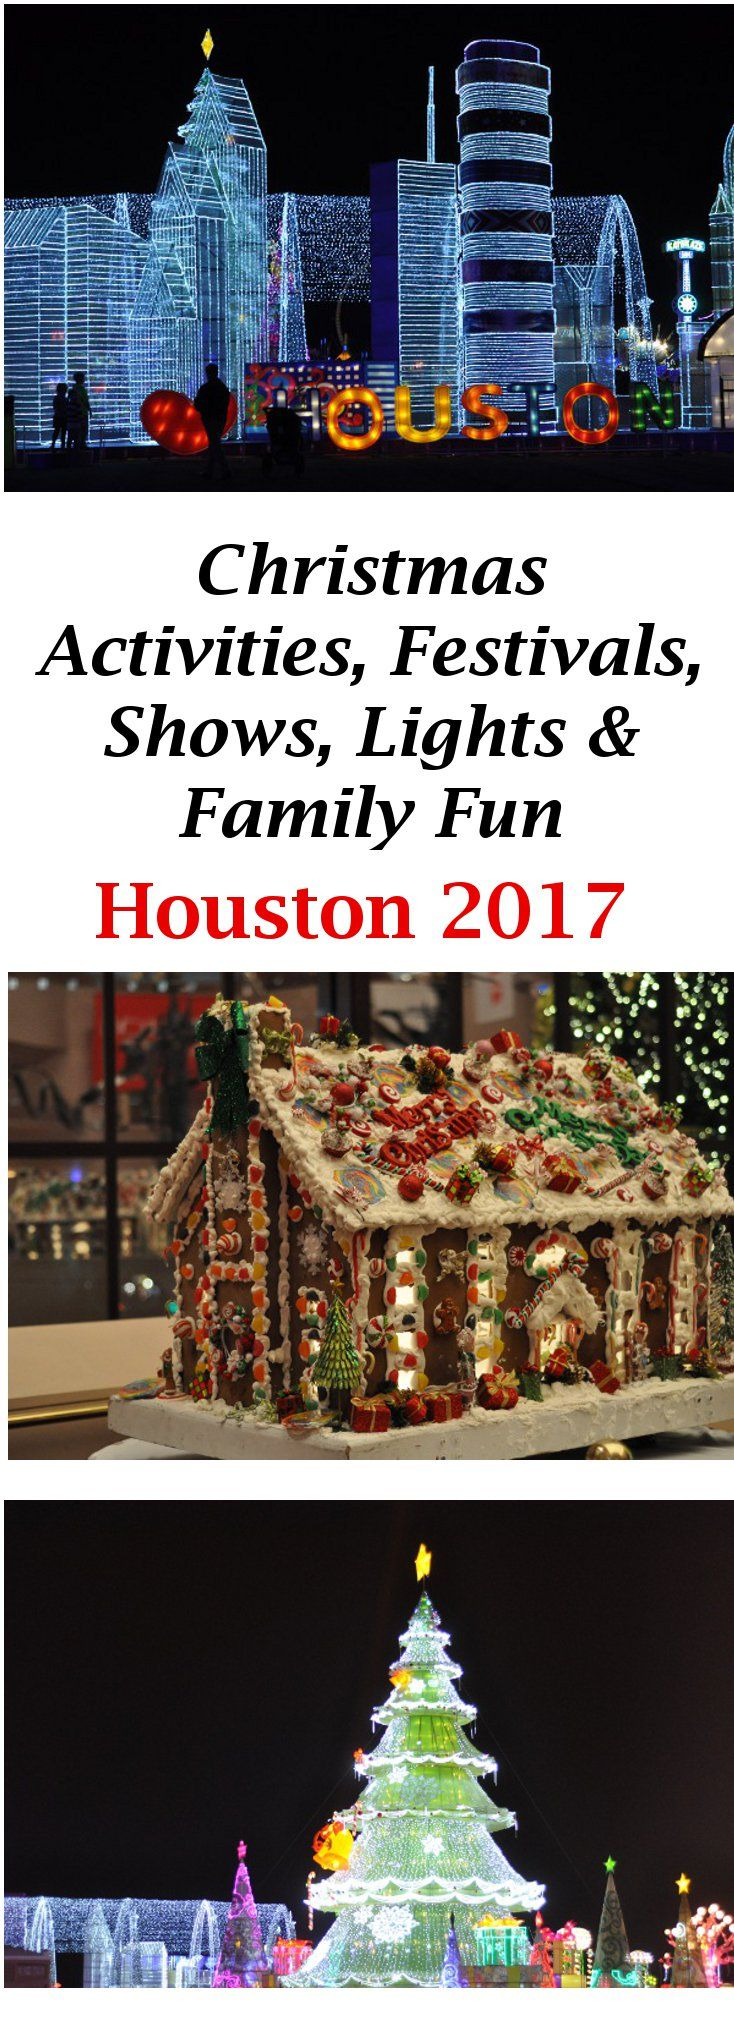 Christmas Activities, Festivals, Shows, Lights & Family Fun... Things to Do in Houston, with Kids, During the Holidays 2017!